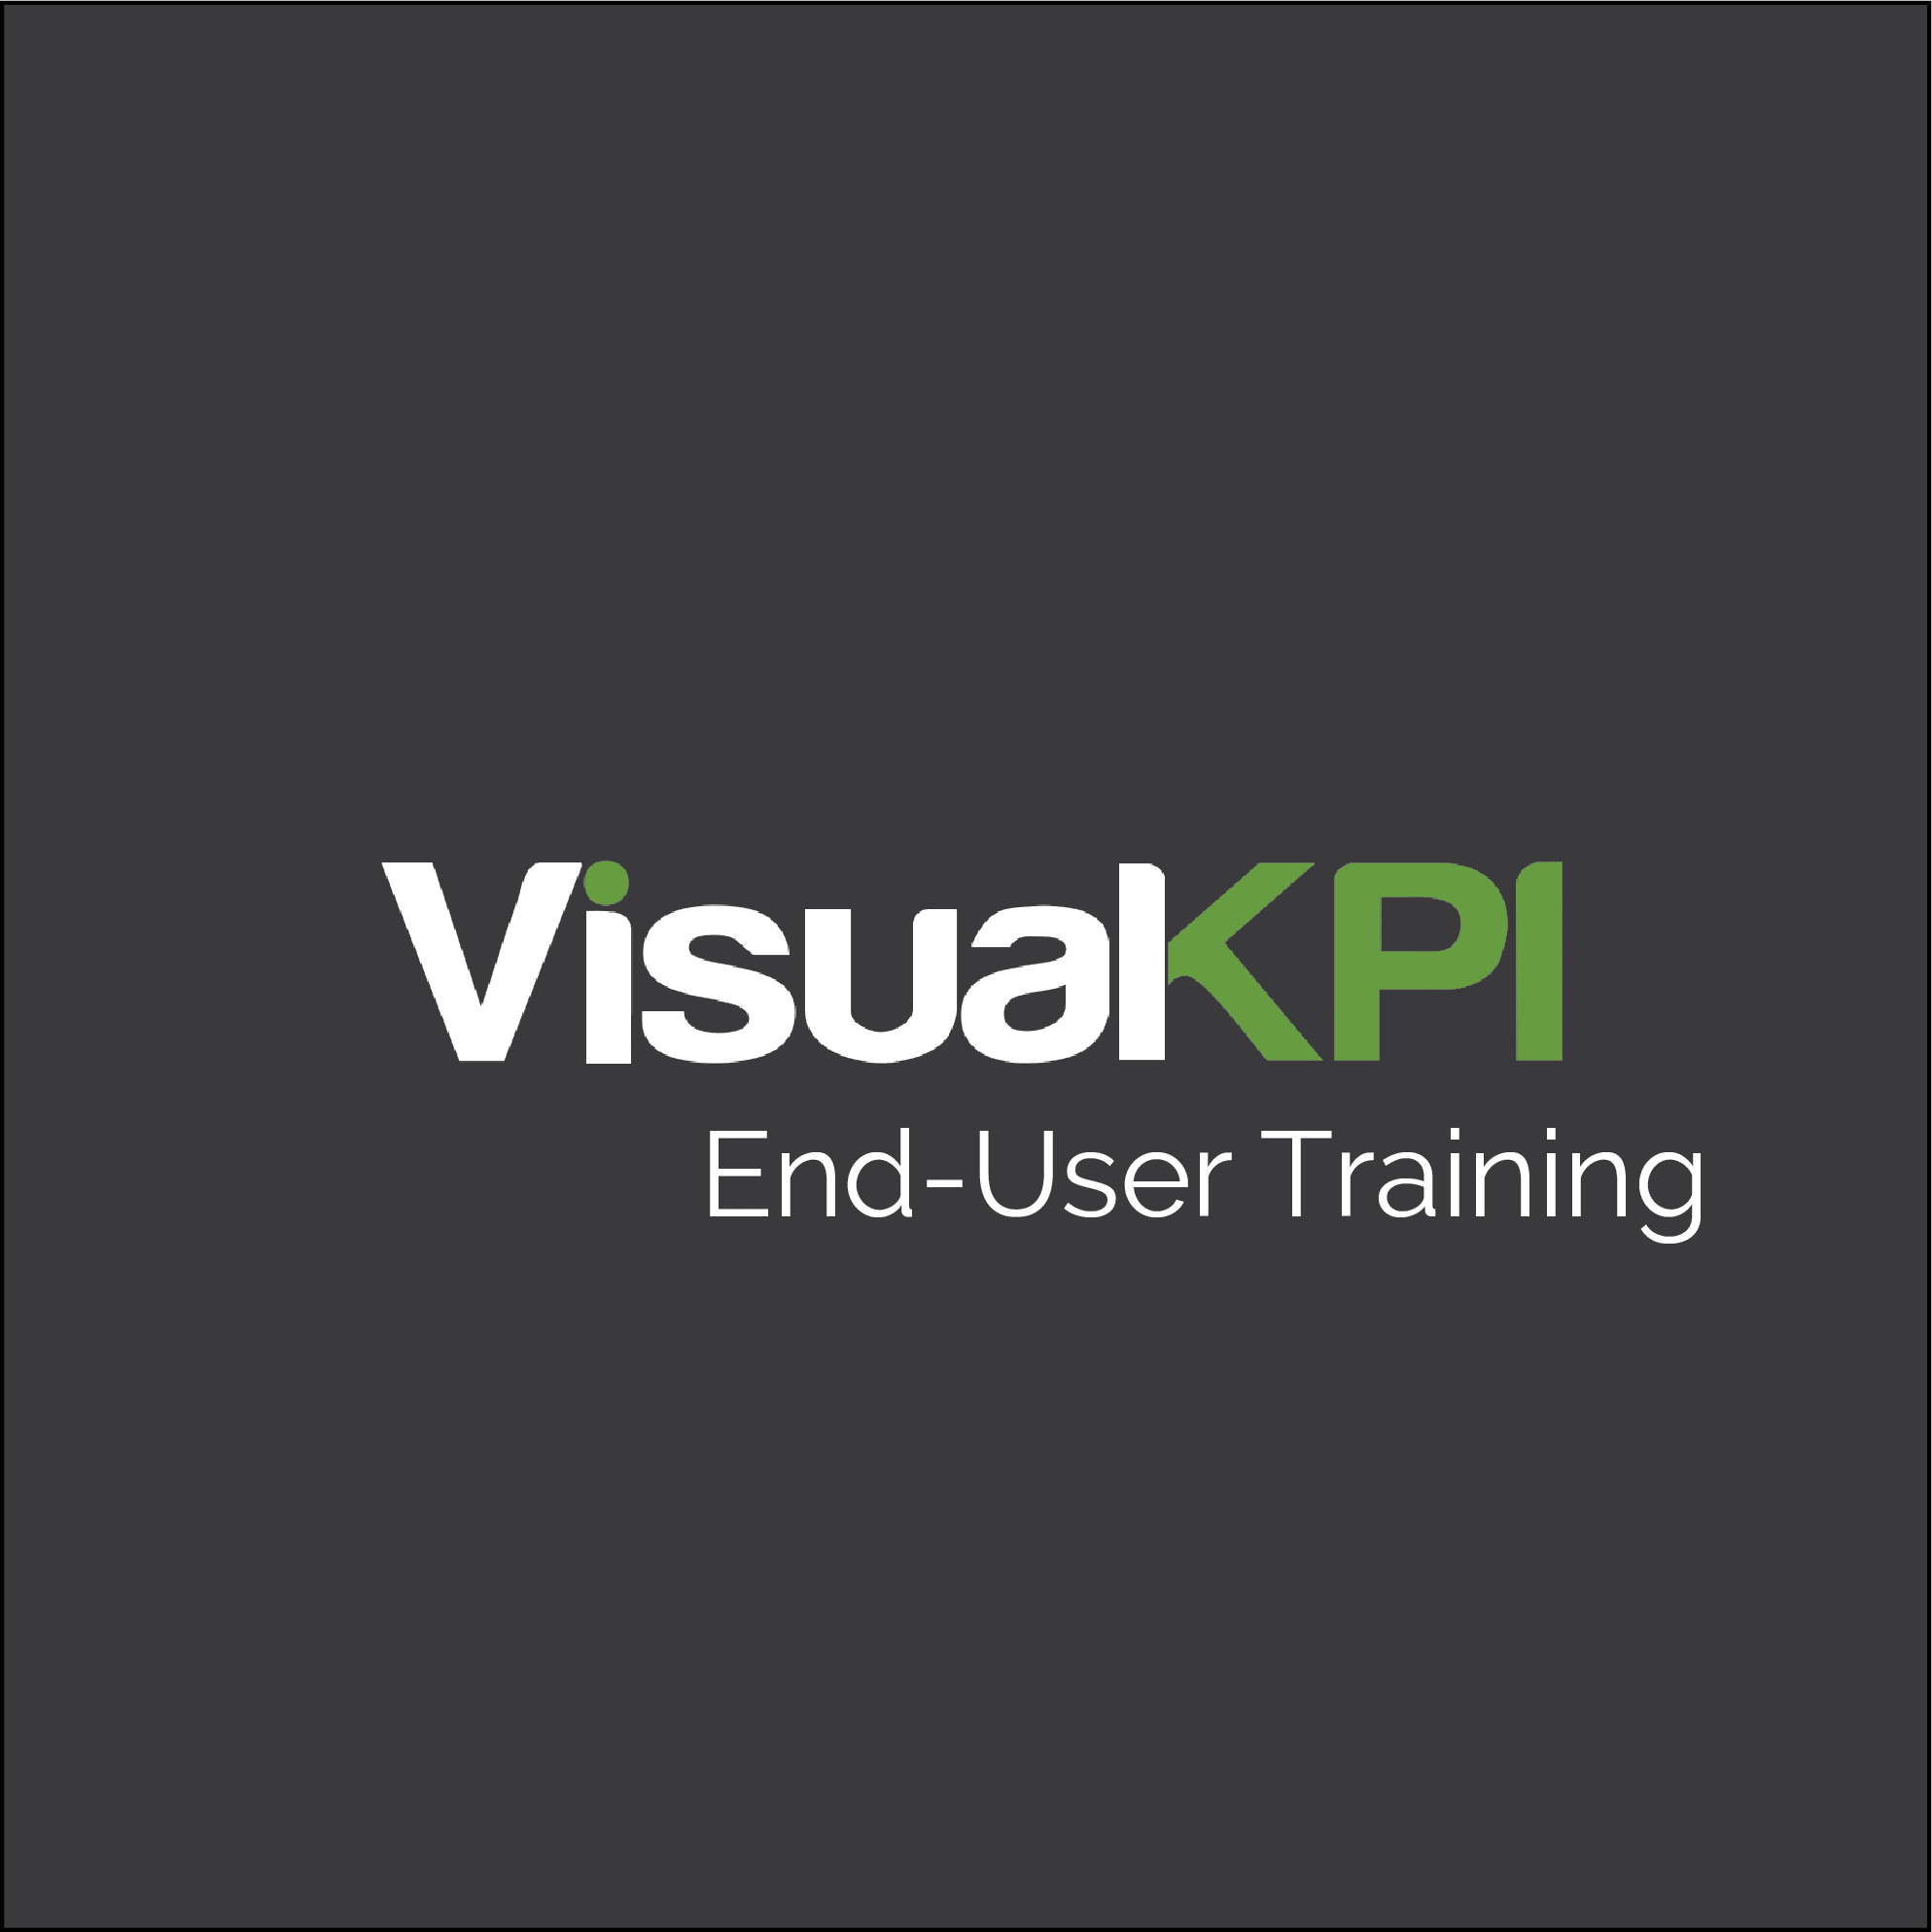 Visual KPI End-User Training